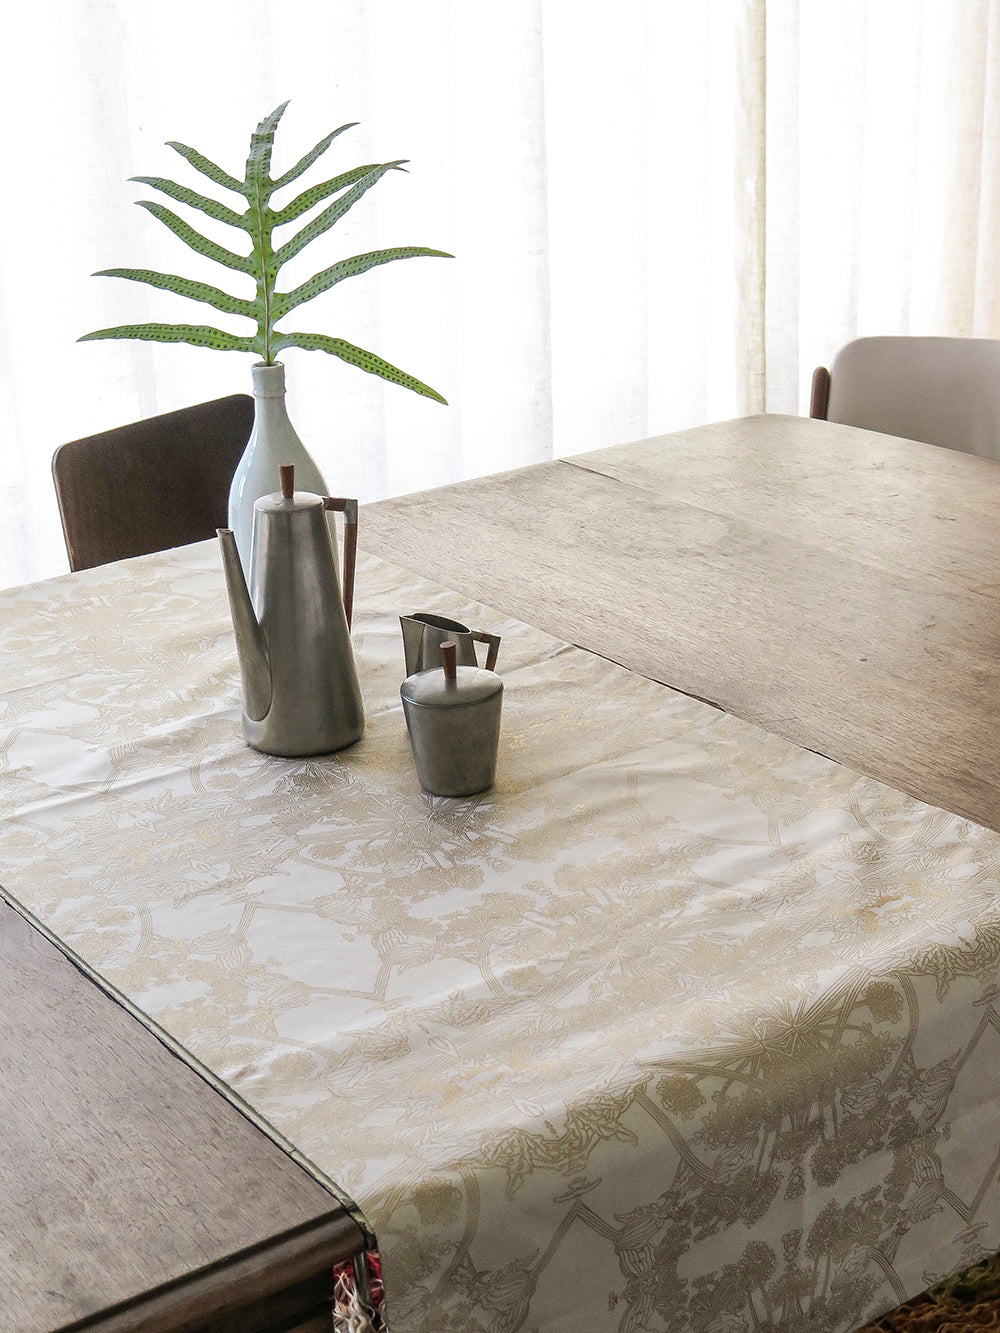 botanicus table runner